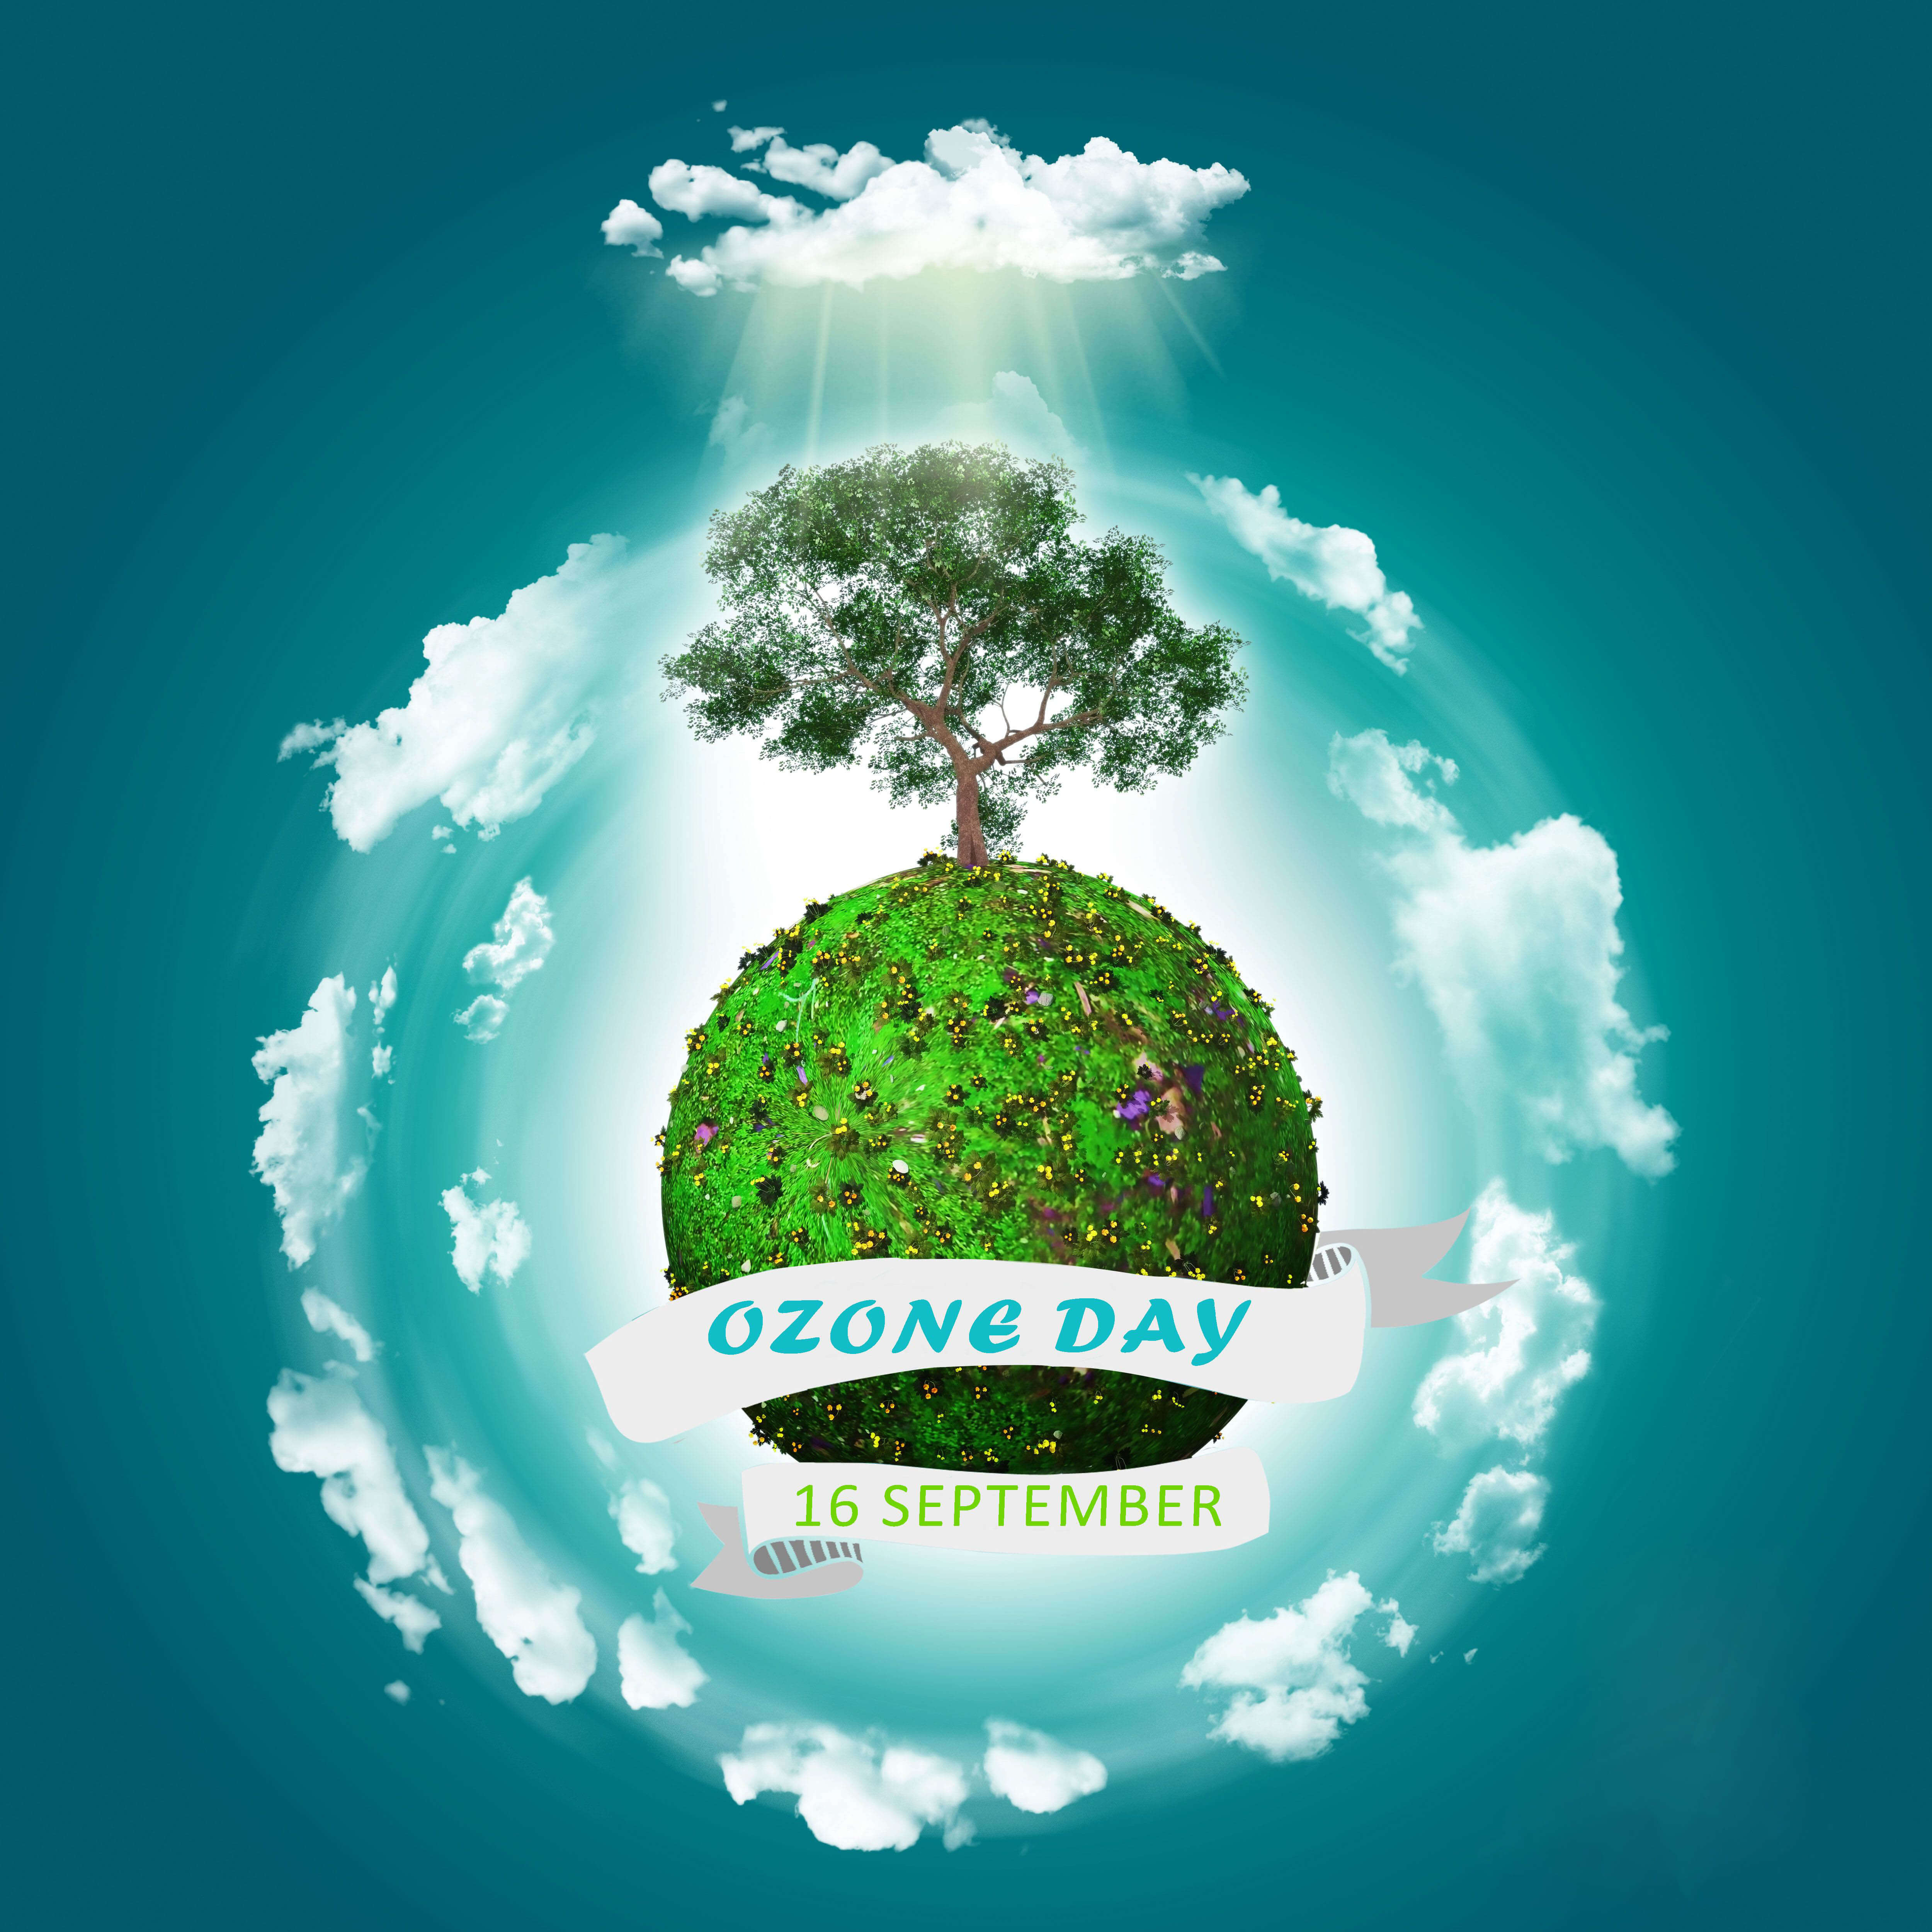 ozone day layer protection awareness save earth environment wallpaper